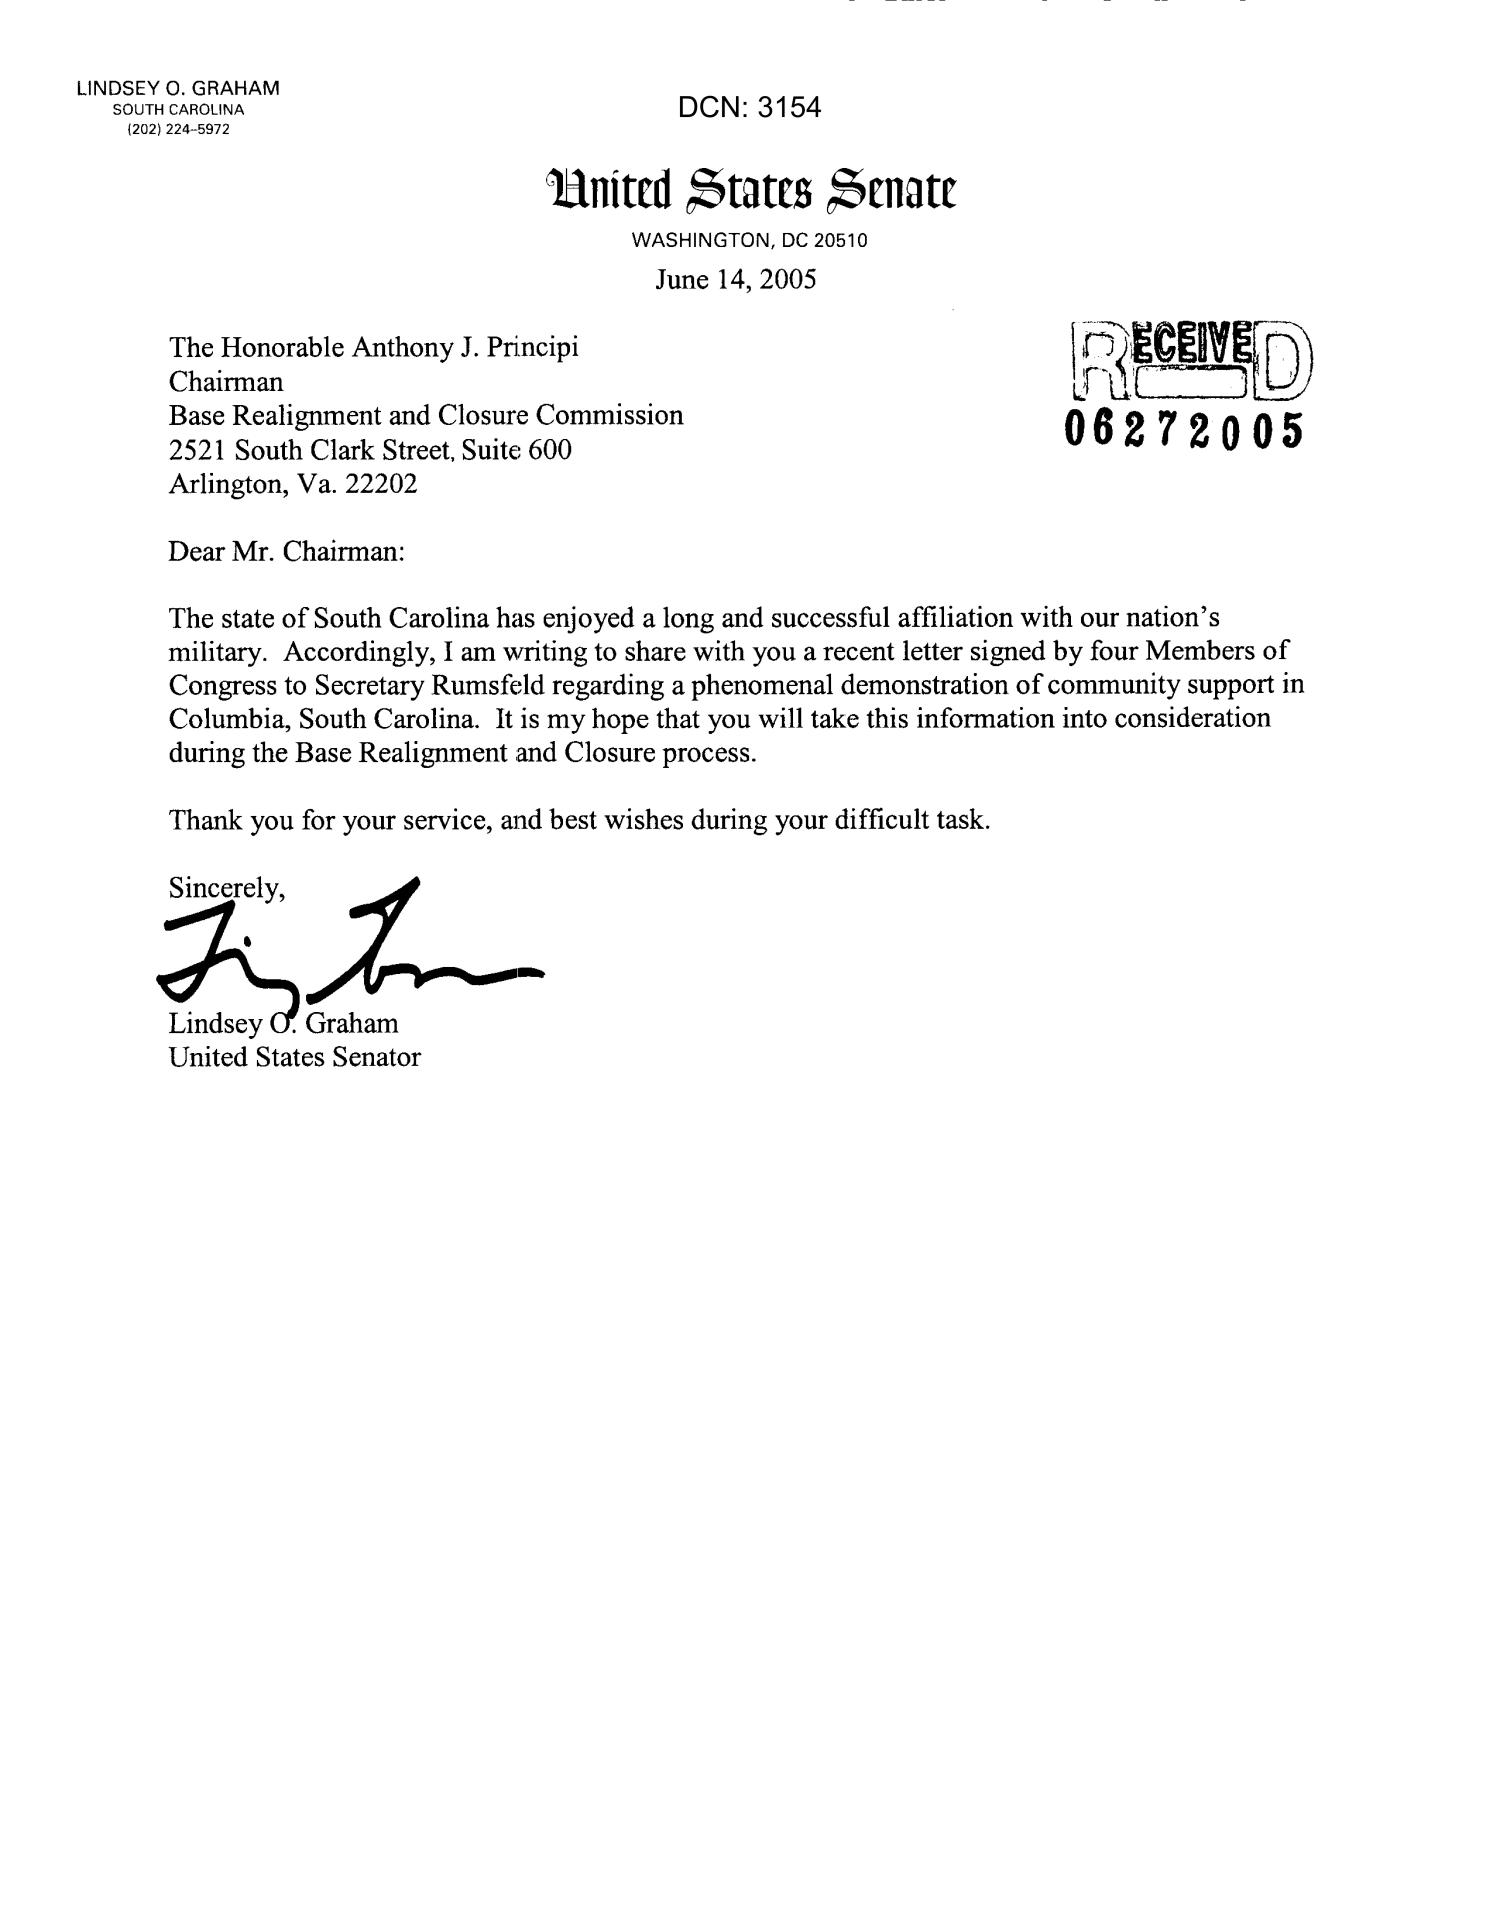 letter to the chairman from lindsey o graham united states senator digital library